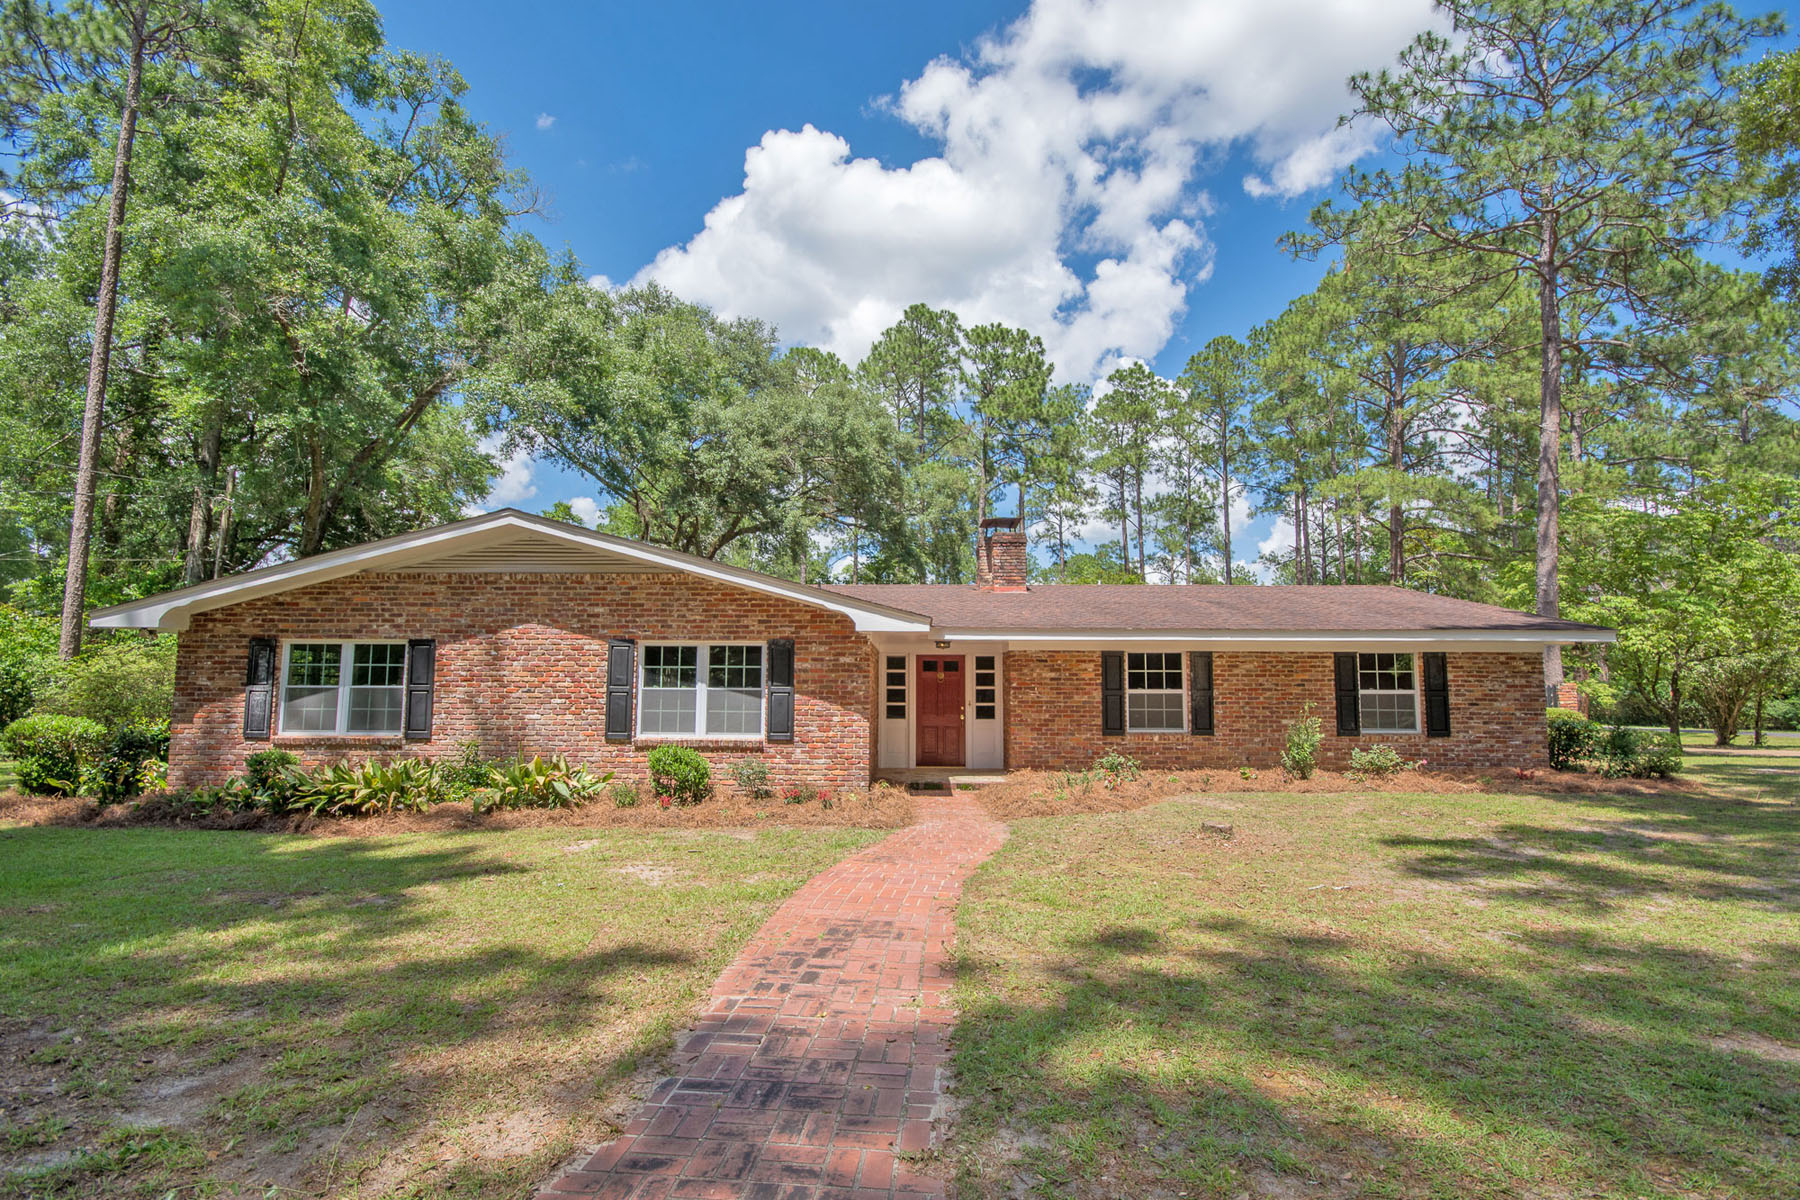 Single Family Home for Sale at Mid-Century Modern Meets Southern Traditional 1511 Lake Douglas Road Bainbridge, Georgia 39819 United States